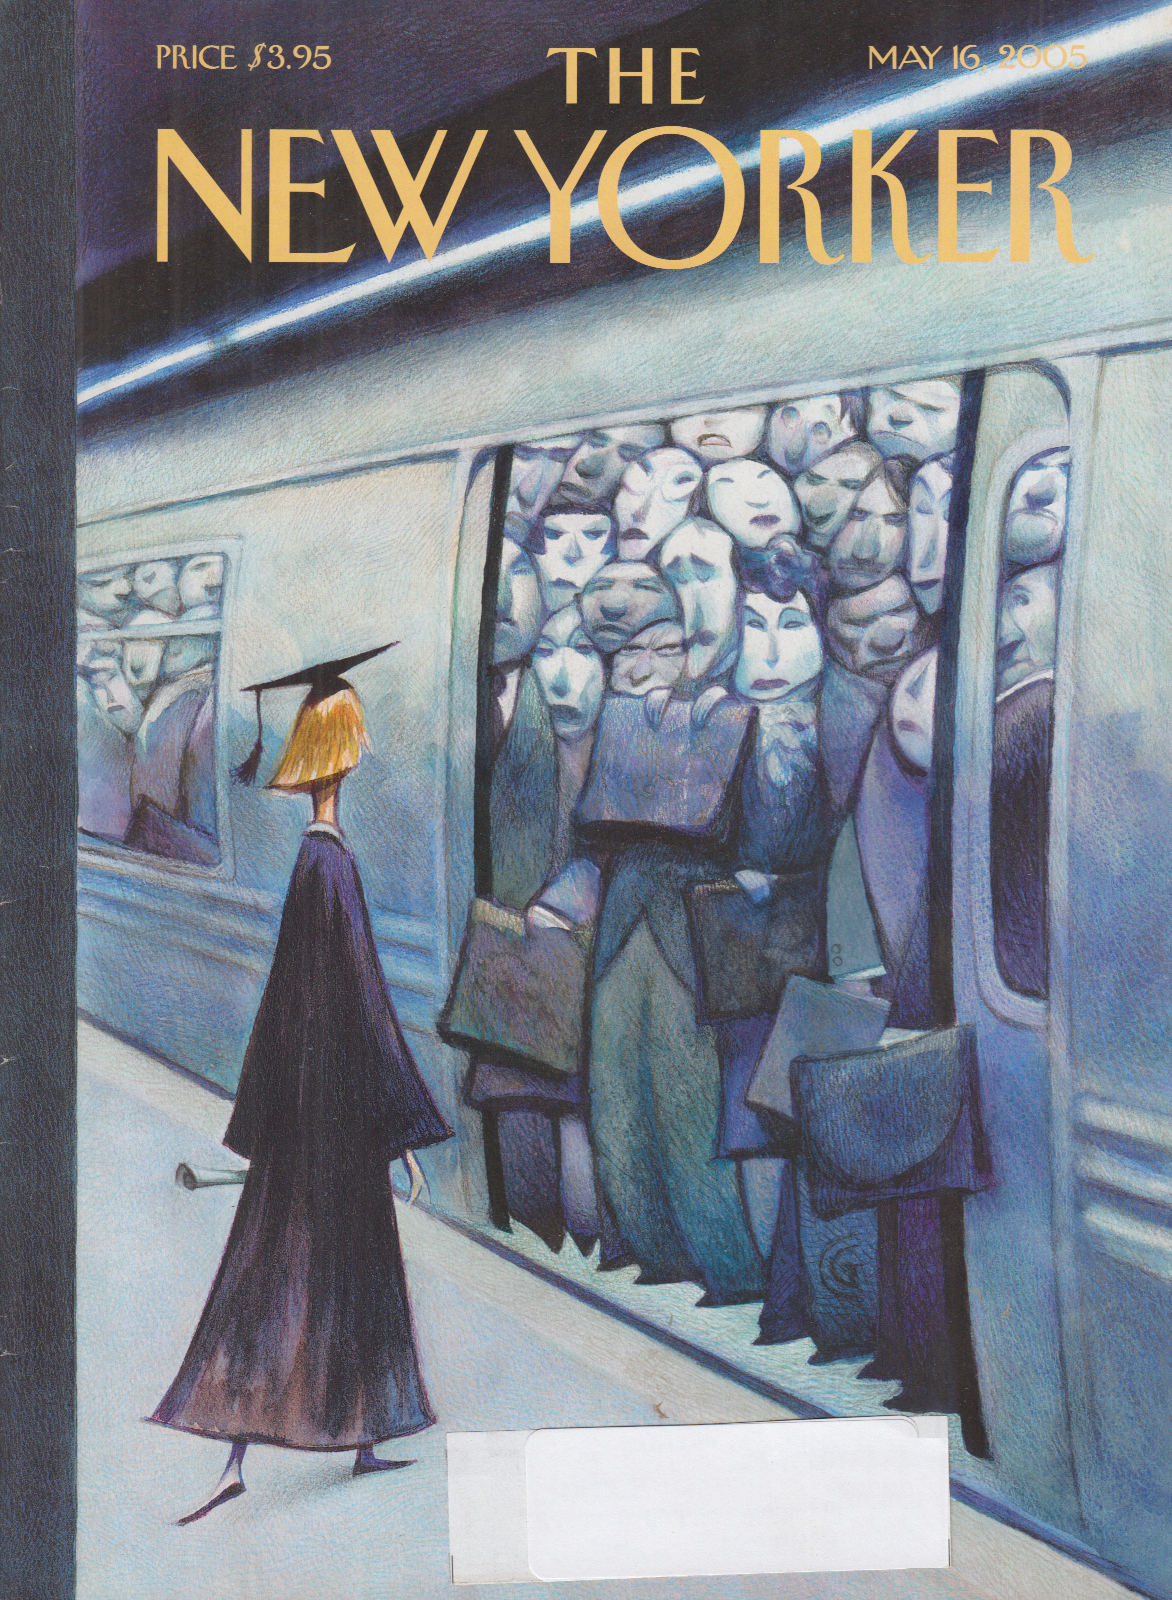 New Yorker cover CG college grad considers overstuffed subway car 5/16 2005